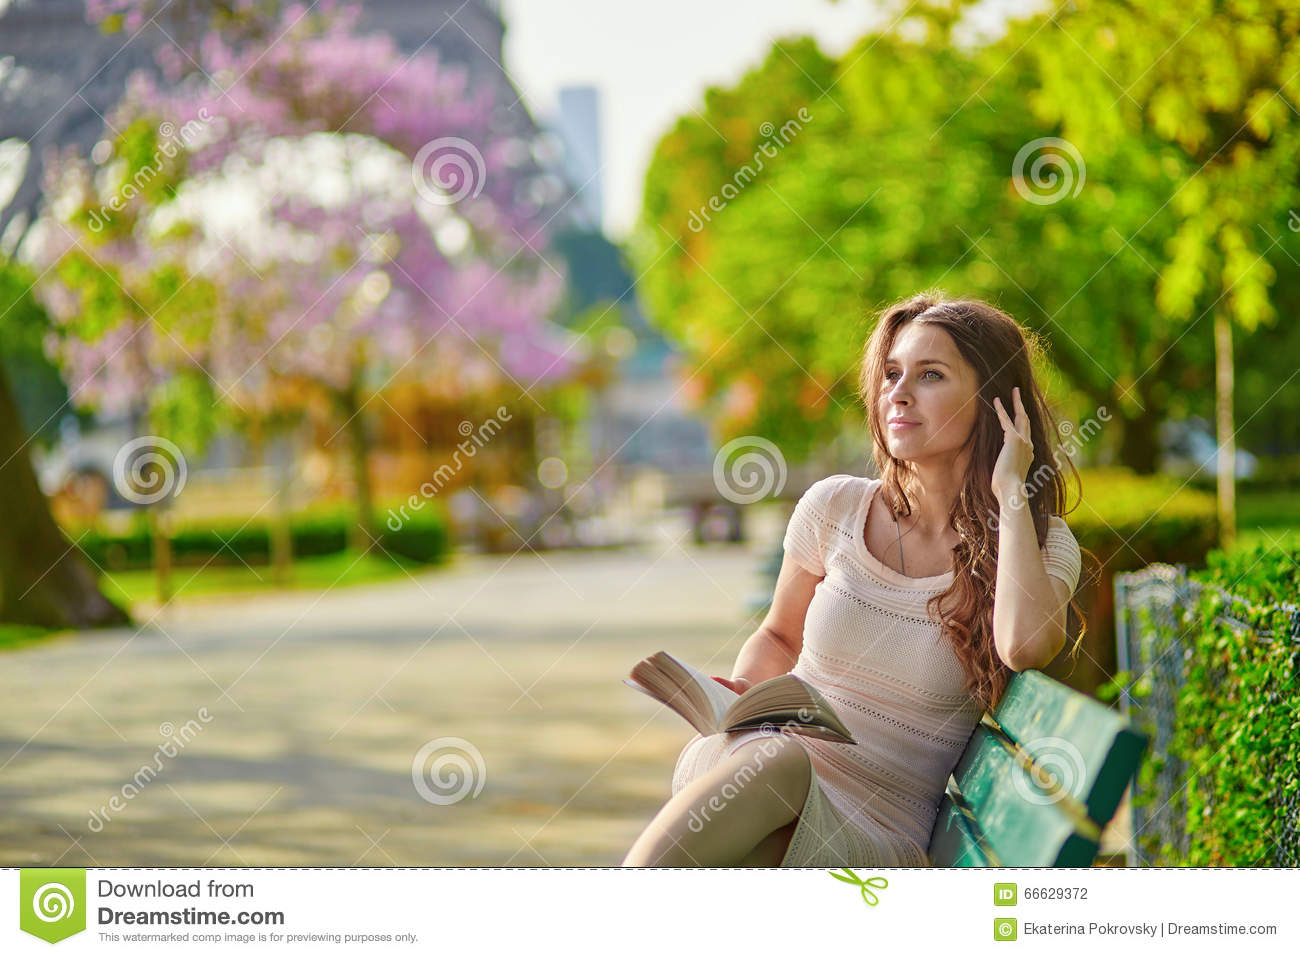 Beautiful young woman in Paris reading on the bench outdoors